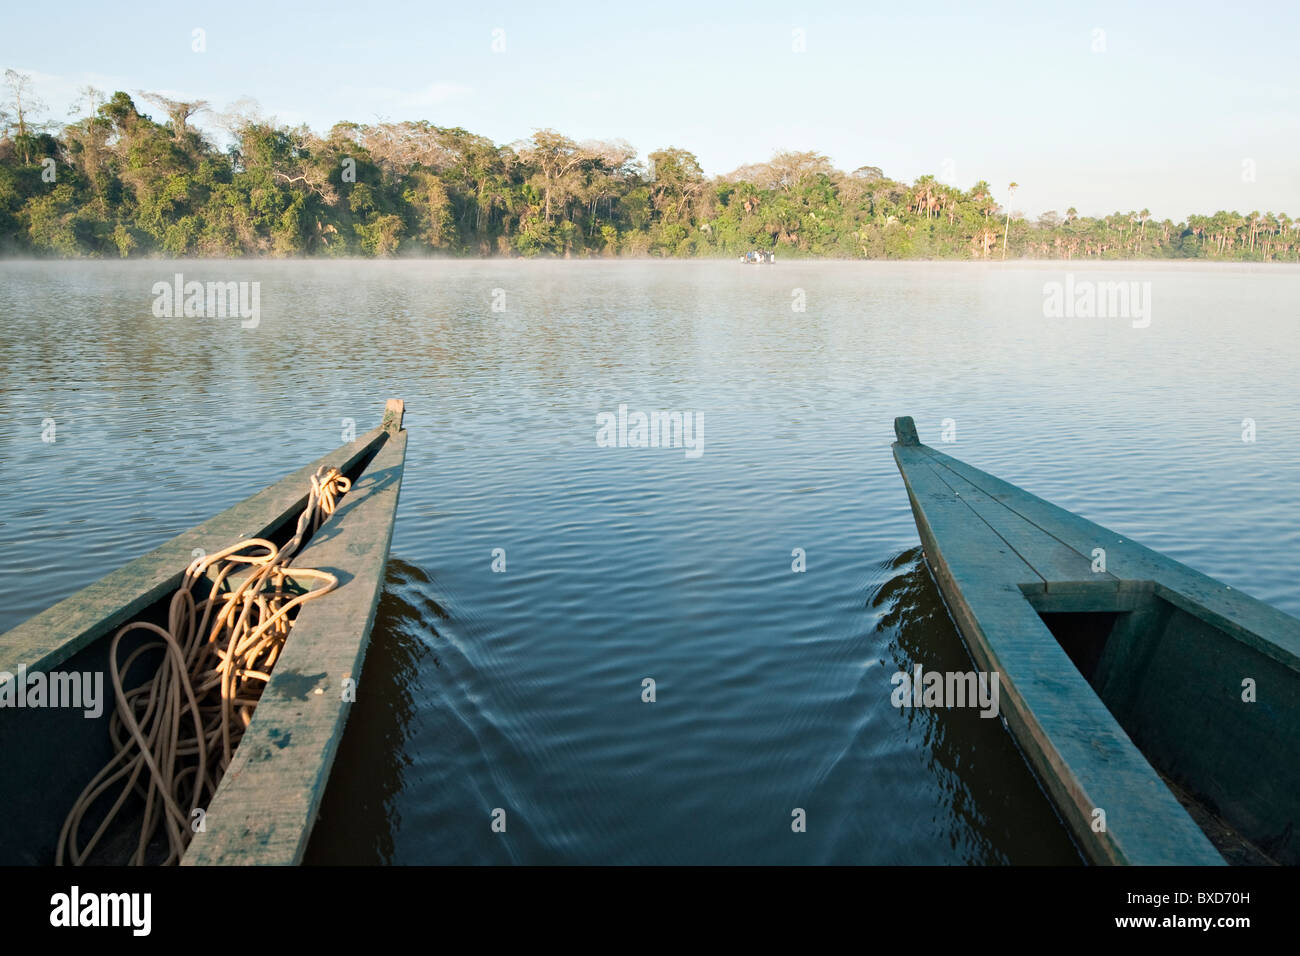 A wooden canoe made of Eucylptus tree floats in the amazon river and connecting tributary rivers in the rainforest. - Stock Image